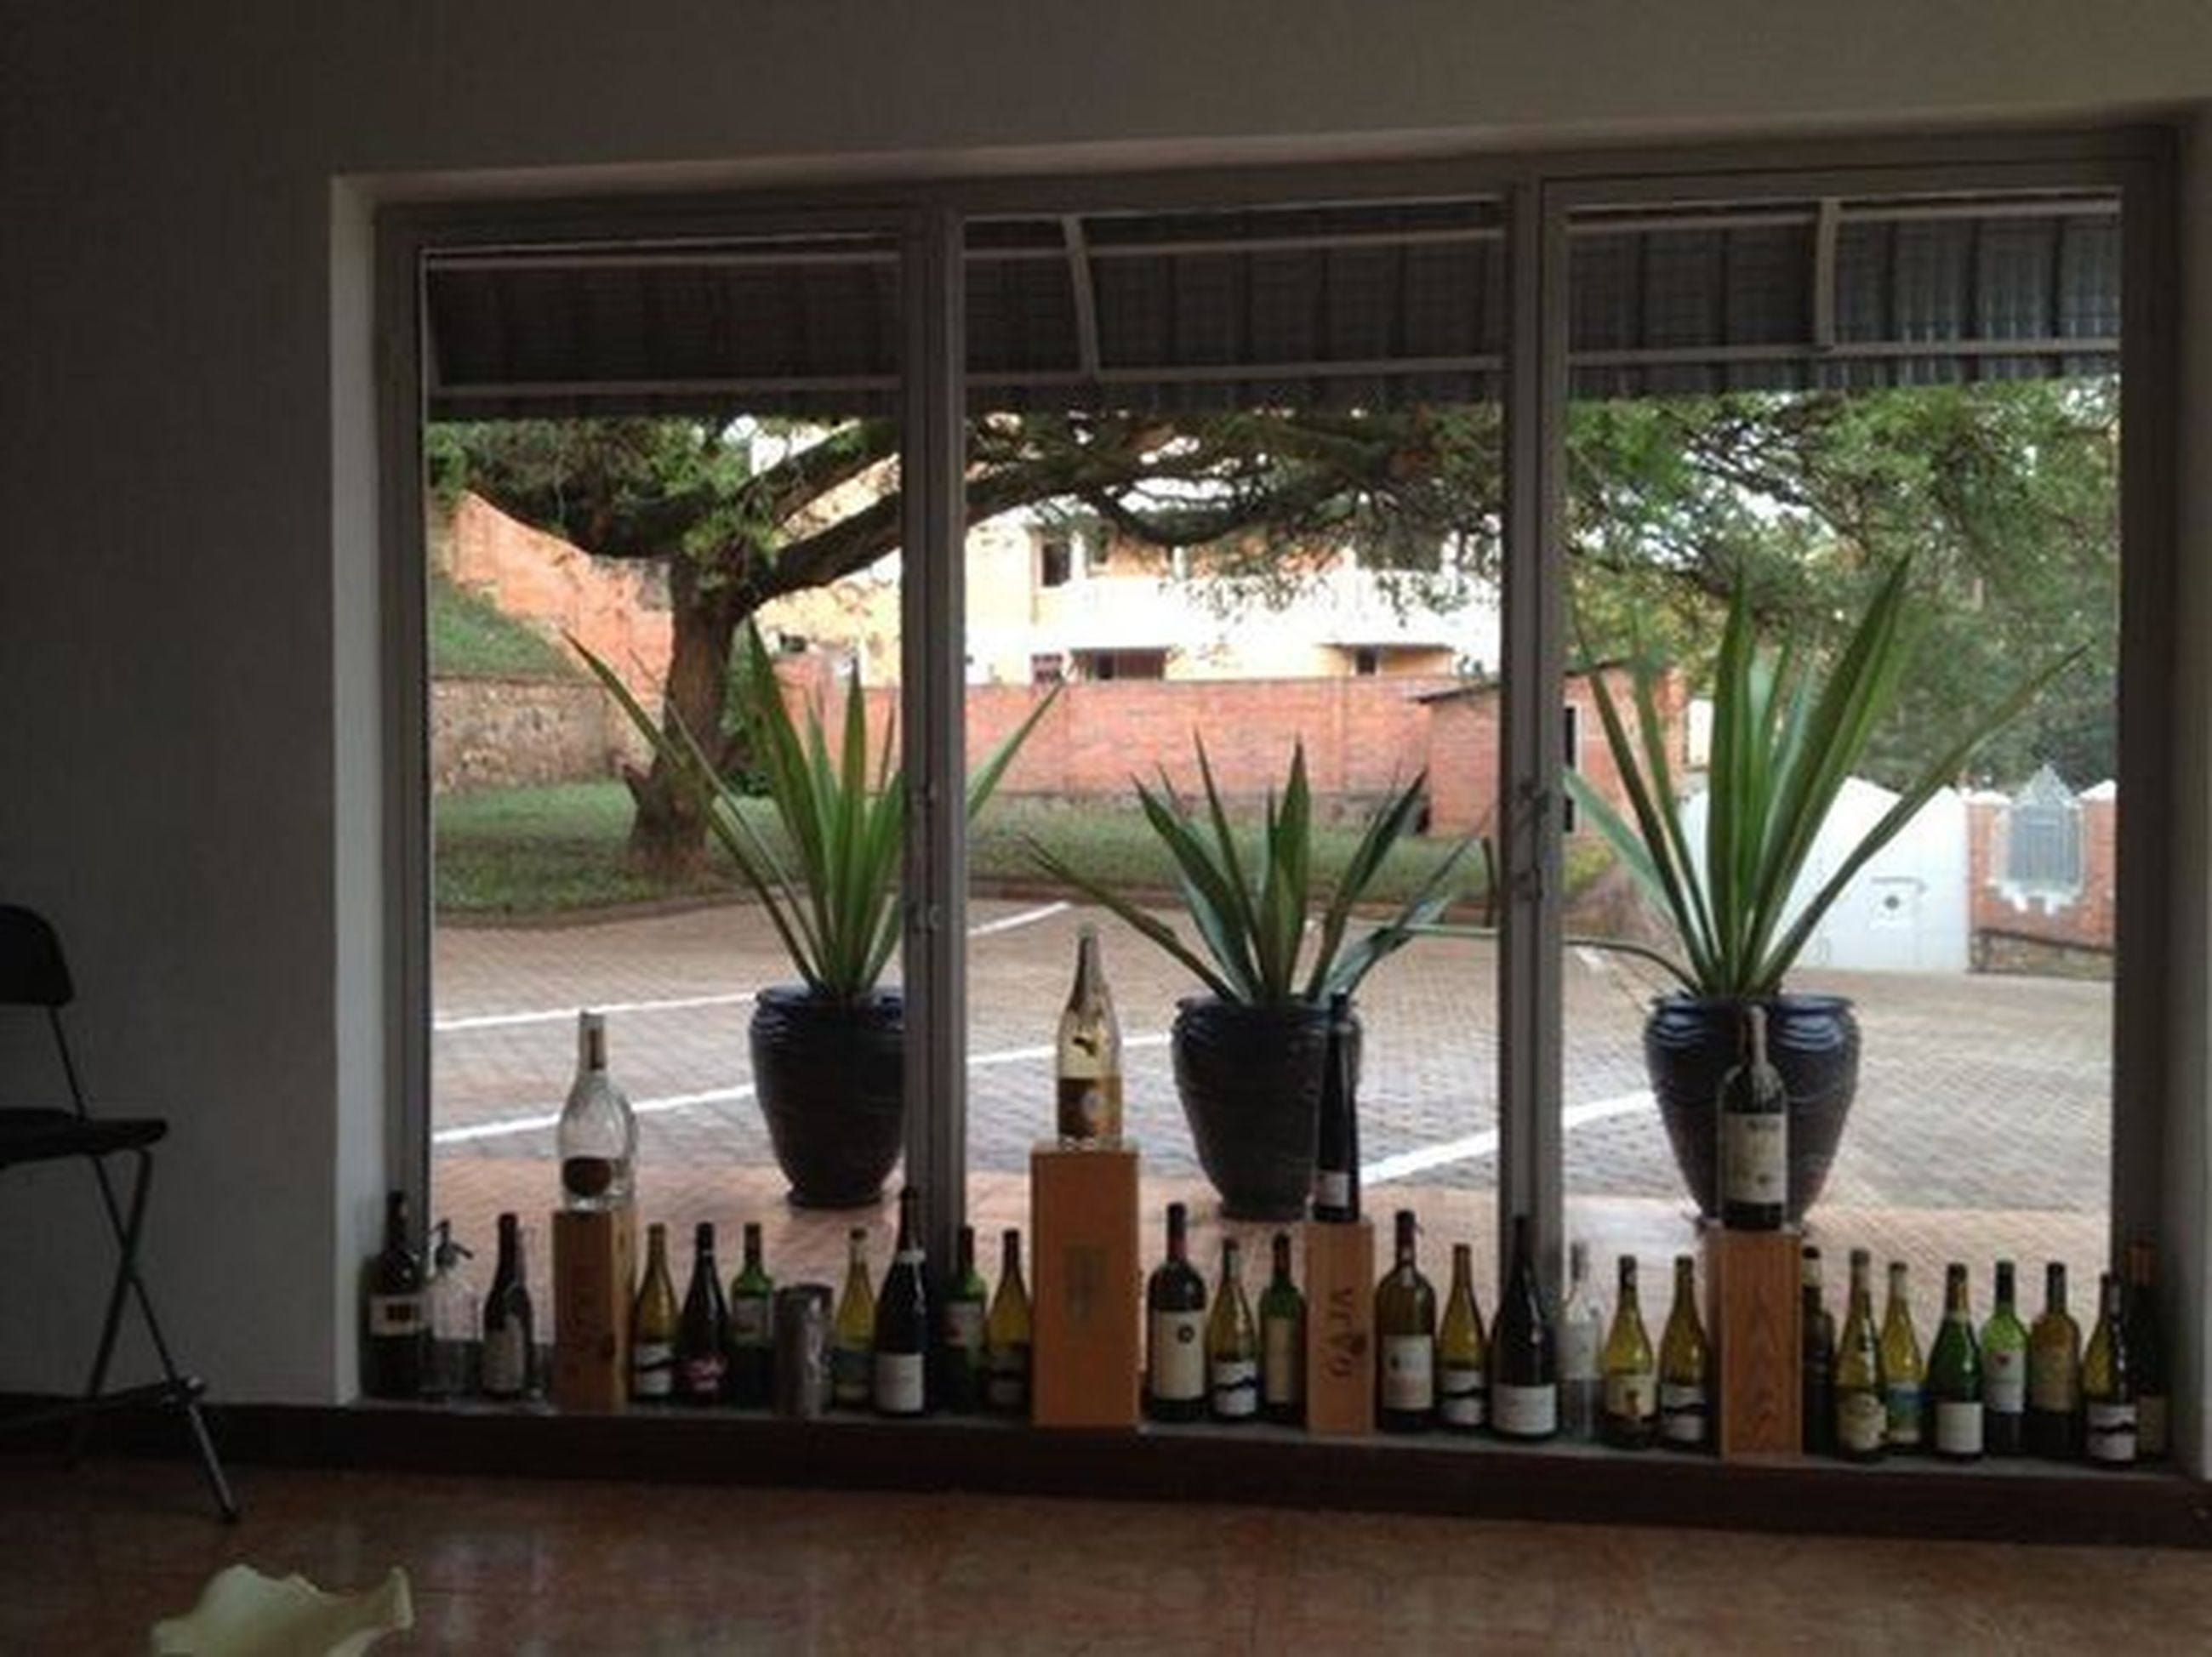 indoors, window, vase, table, potted plant, plant, built structure, architecture, group of objects, variation, tree trunk, growth, glass, tourist resort, arrangement, day, place setting